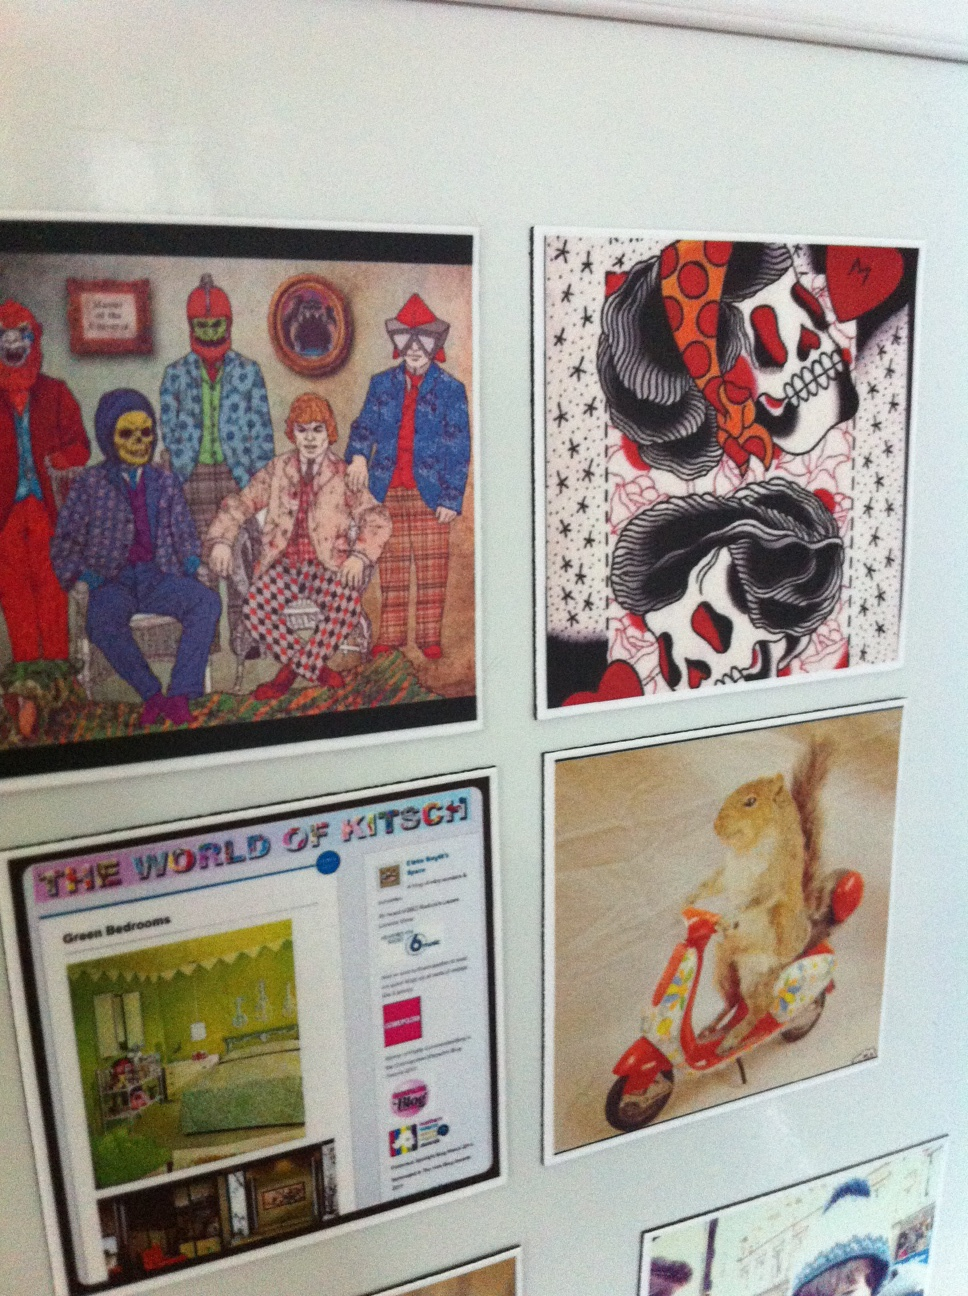 Turn Your Fridge Into an Instagram Feed with 15% off at Stickygram for The World of Kitsch Readers